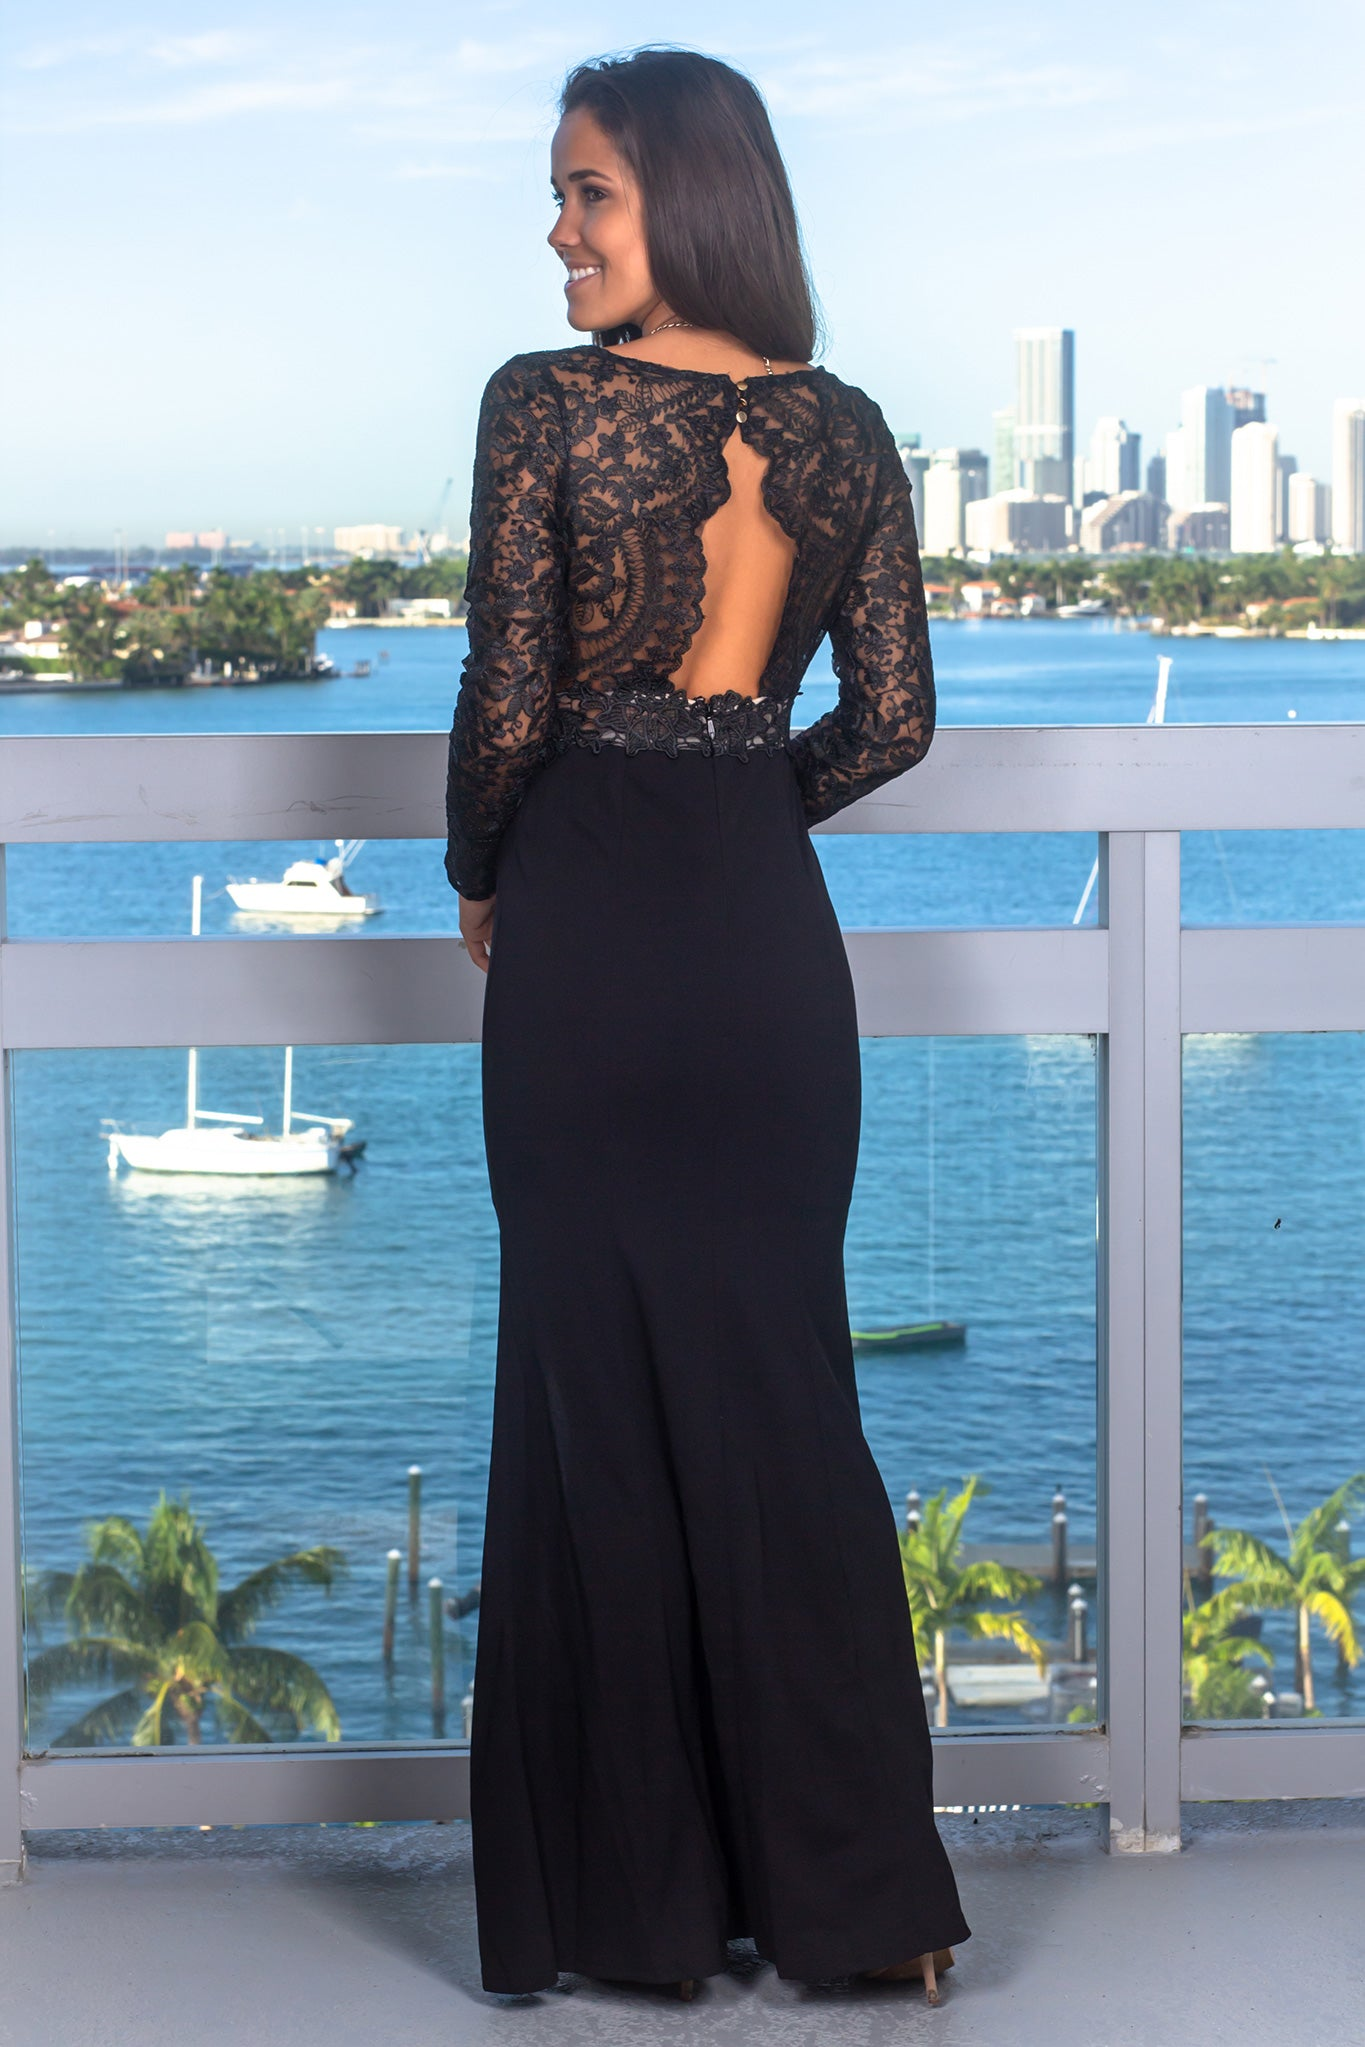 Black and Nude Long Sleeve Maxi Dress